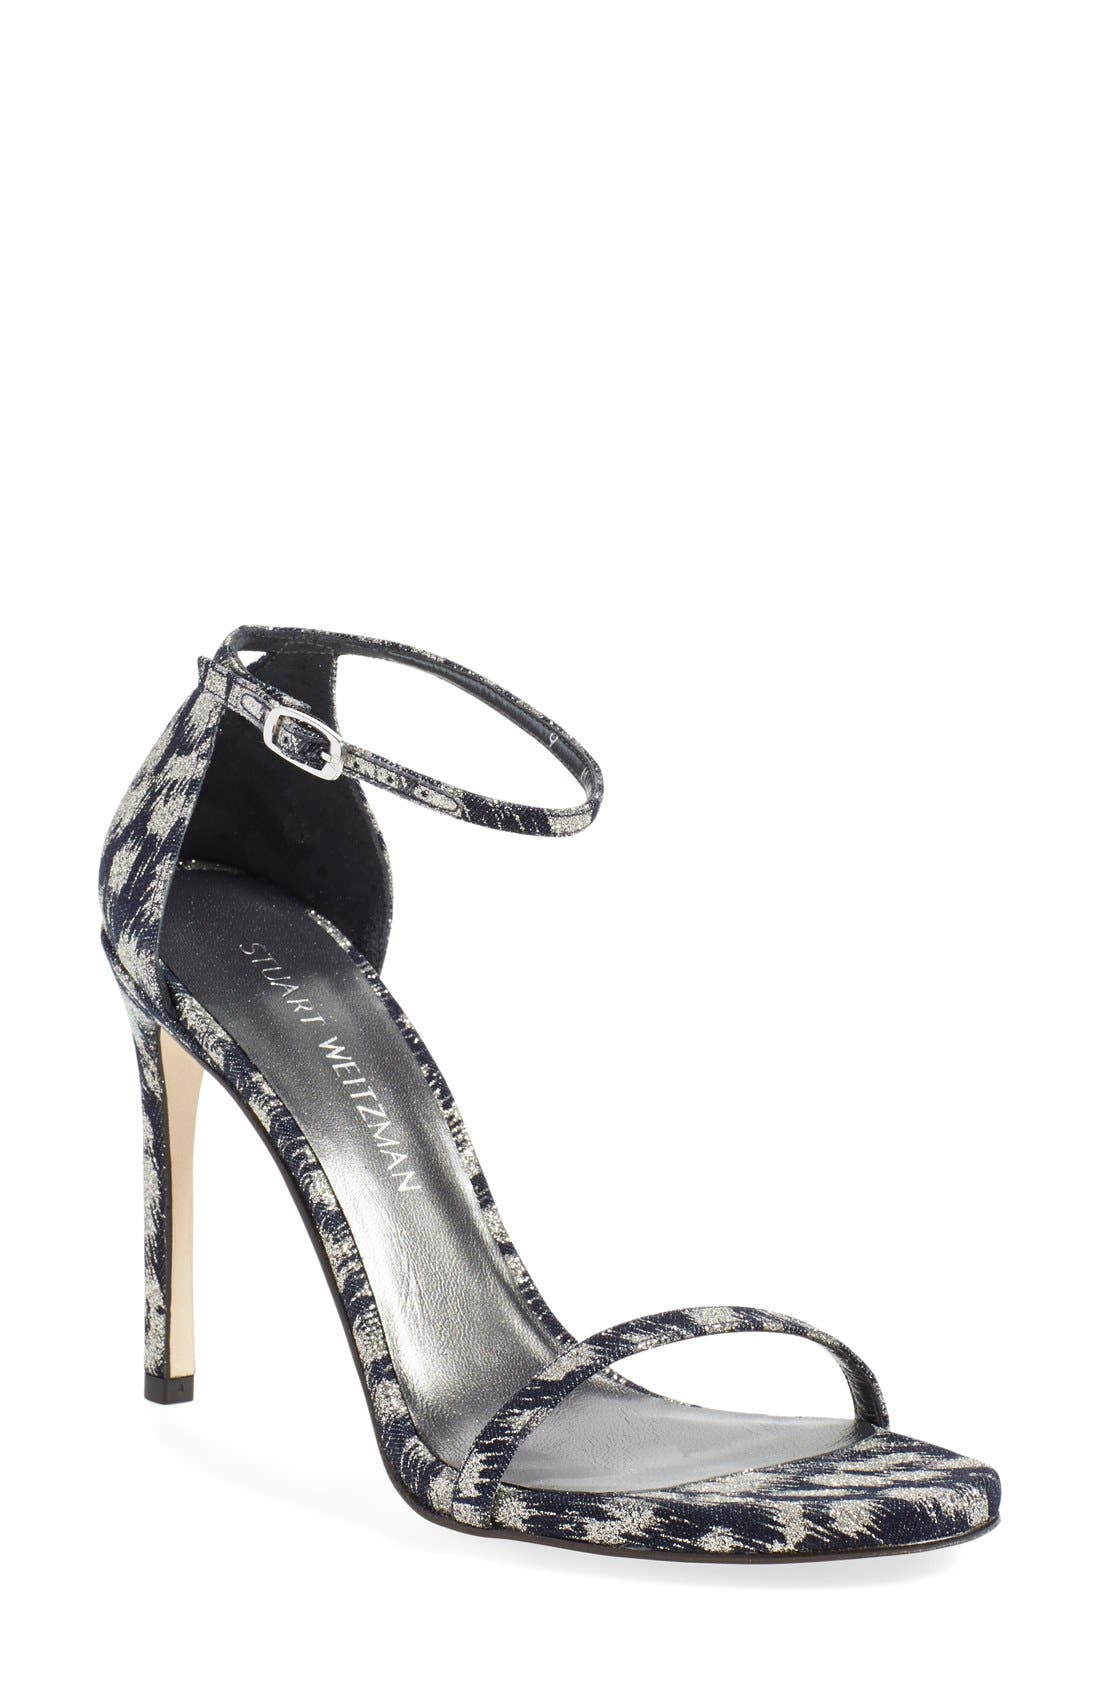 Nudistsong Ankle Strap Sandal,                             Main thumbnail 28, color,